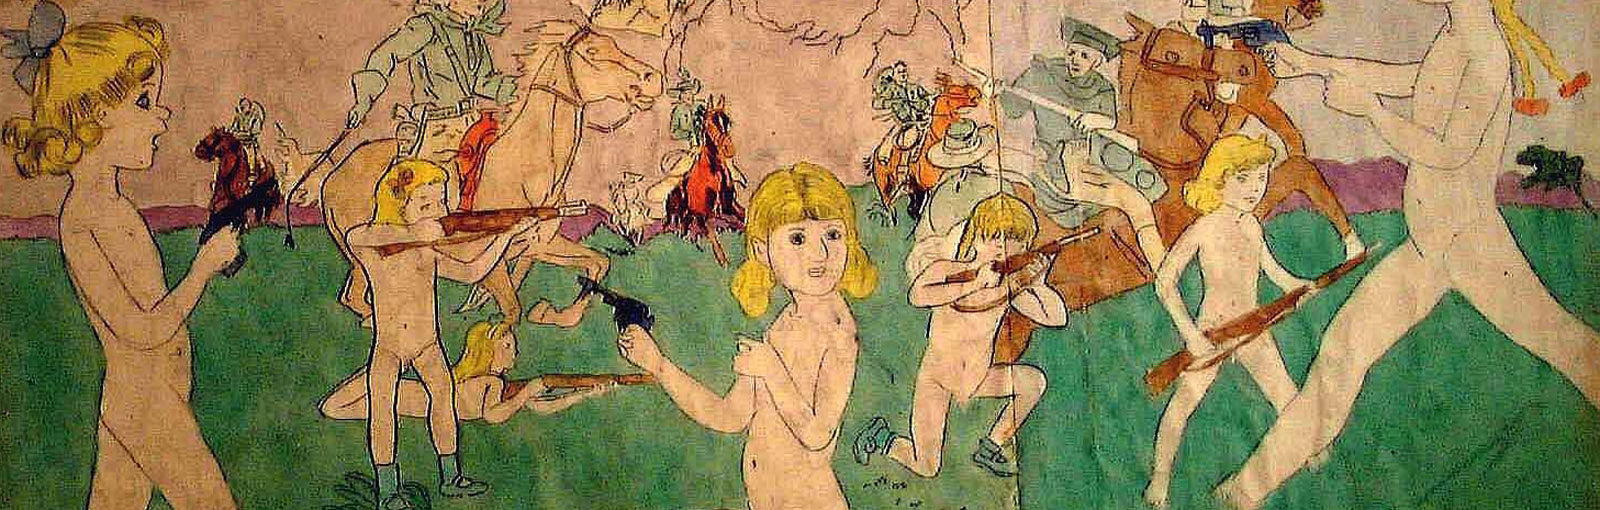 THE DISTURBED GENIUS OF OUTSIDER ARTIST HENRY DARGER